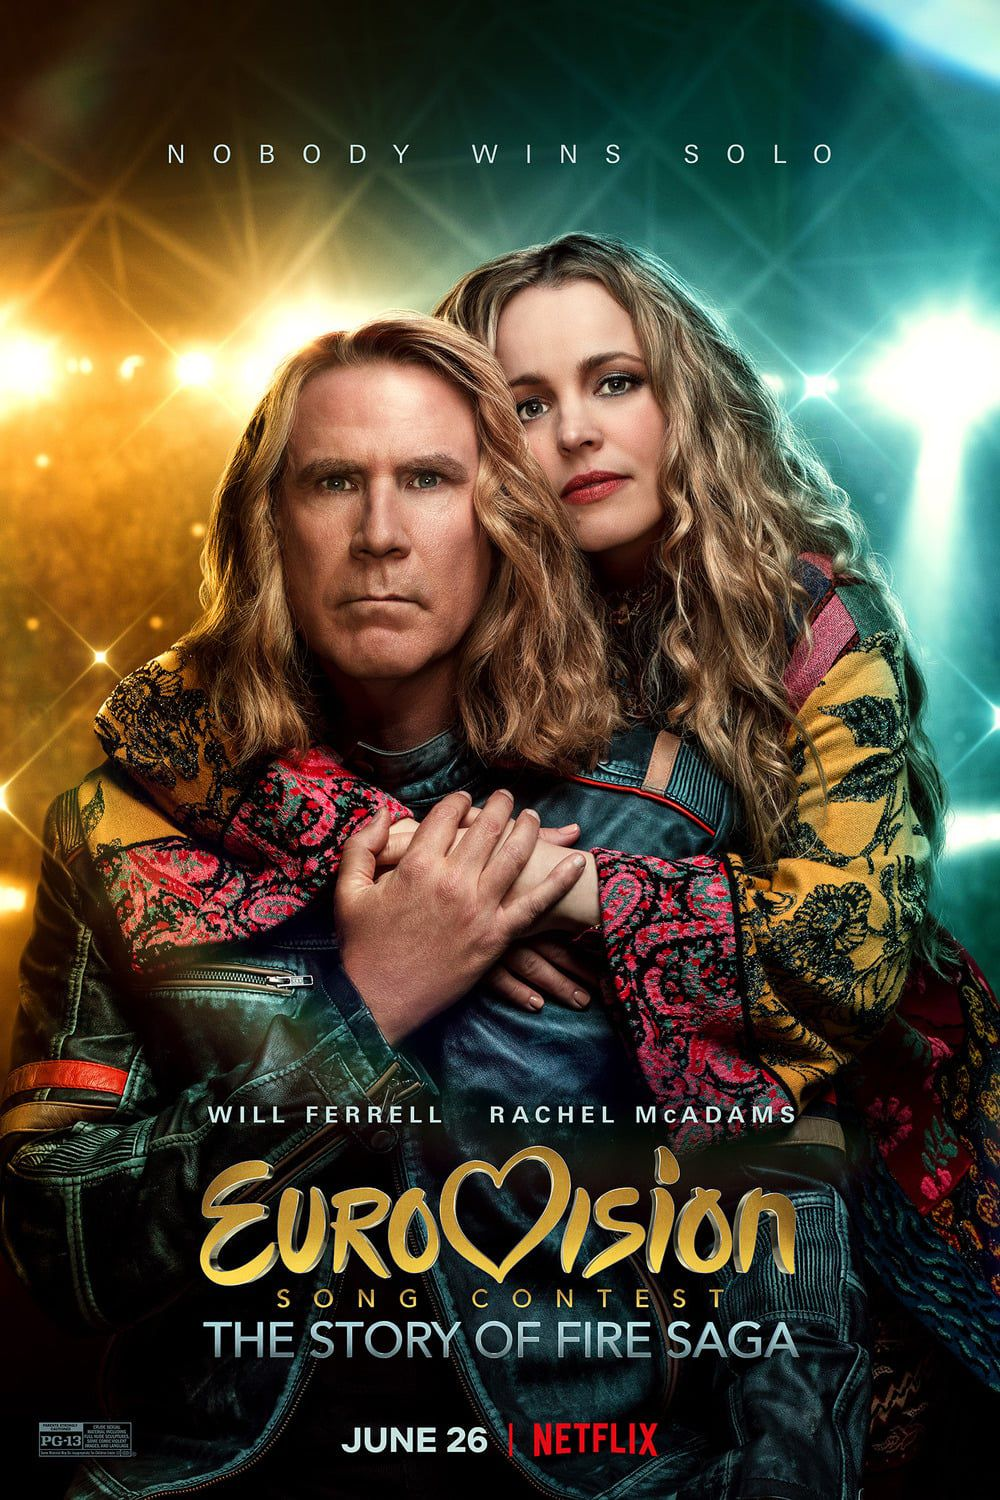 Eurovision Song Contest: The Story of Fire Saga - Film (2020)